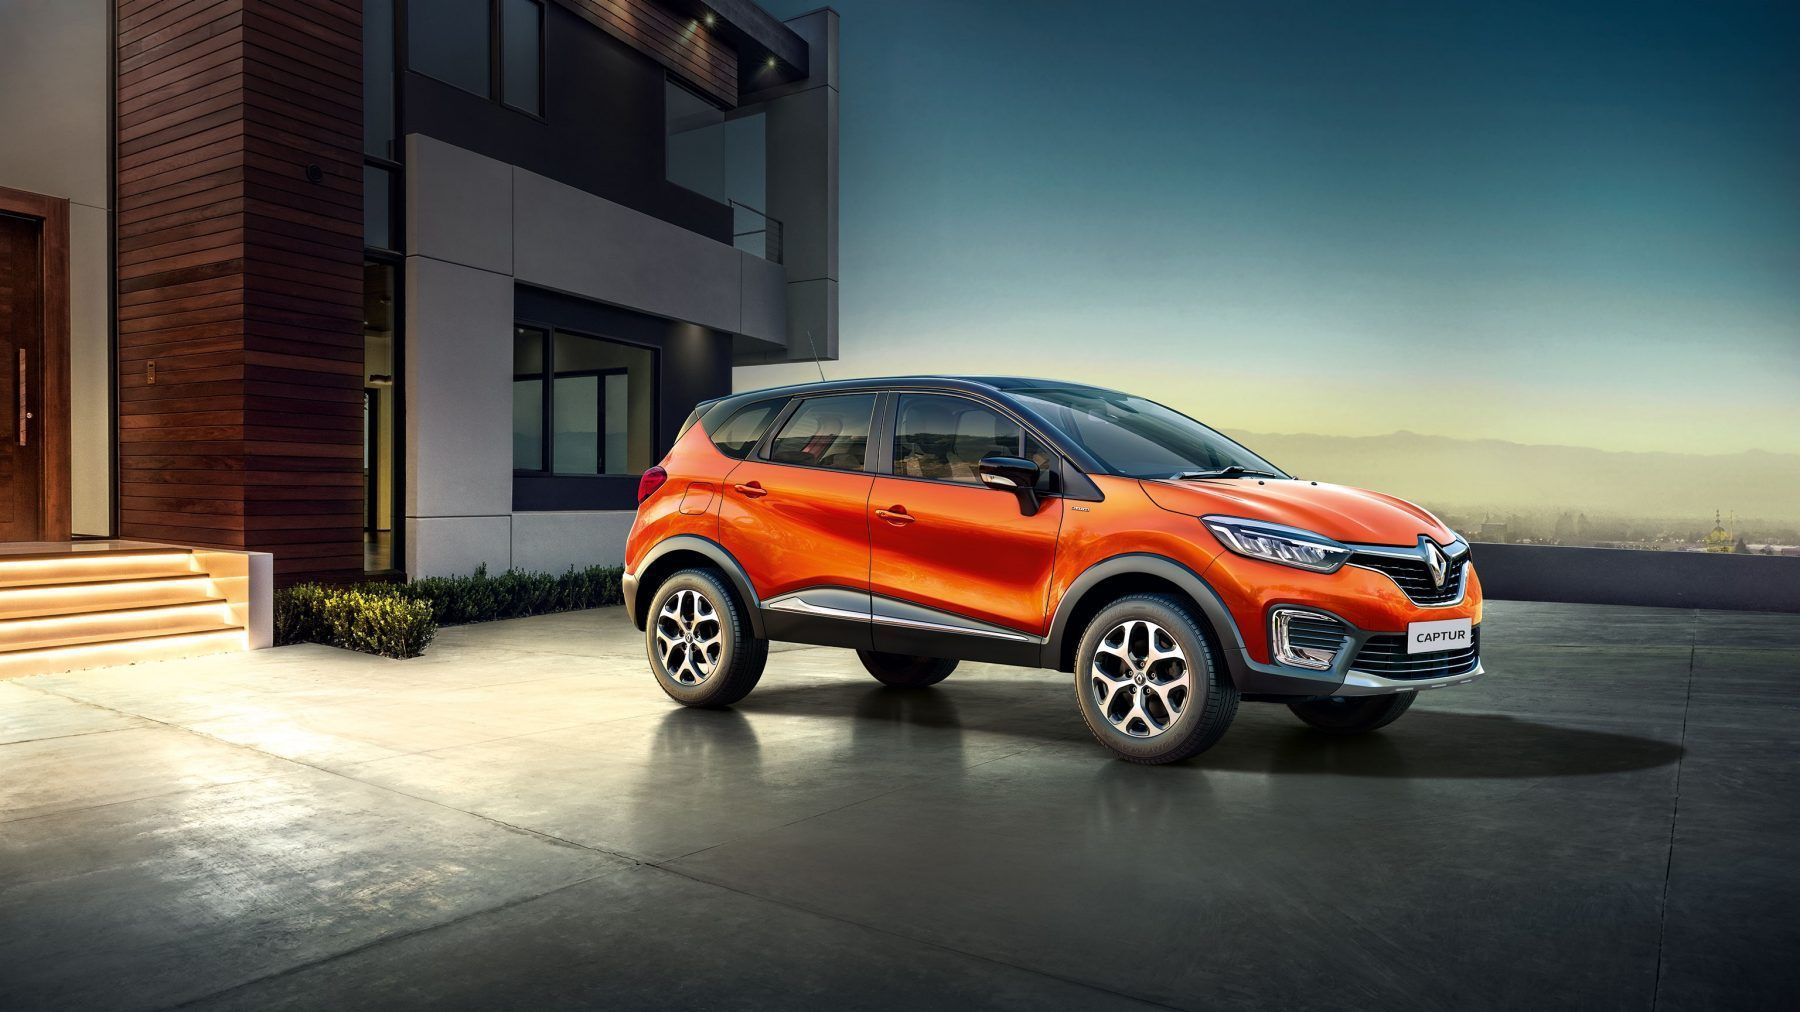 The Renault Captur Is Here To Capture Your Senses India S Most